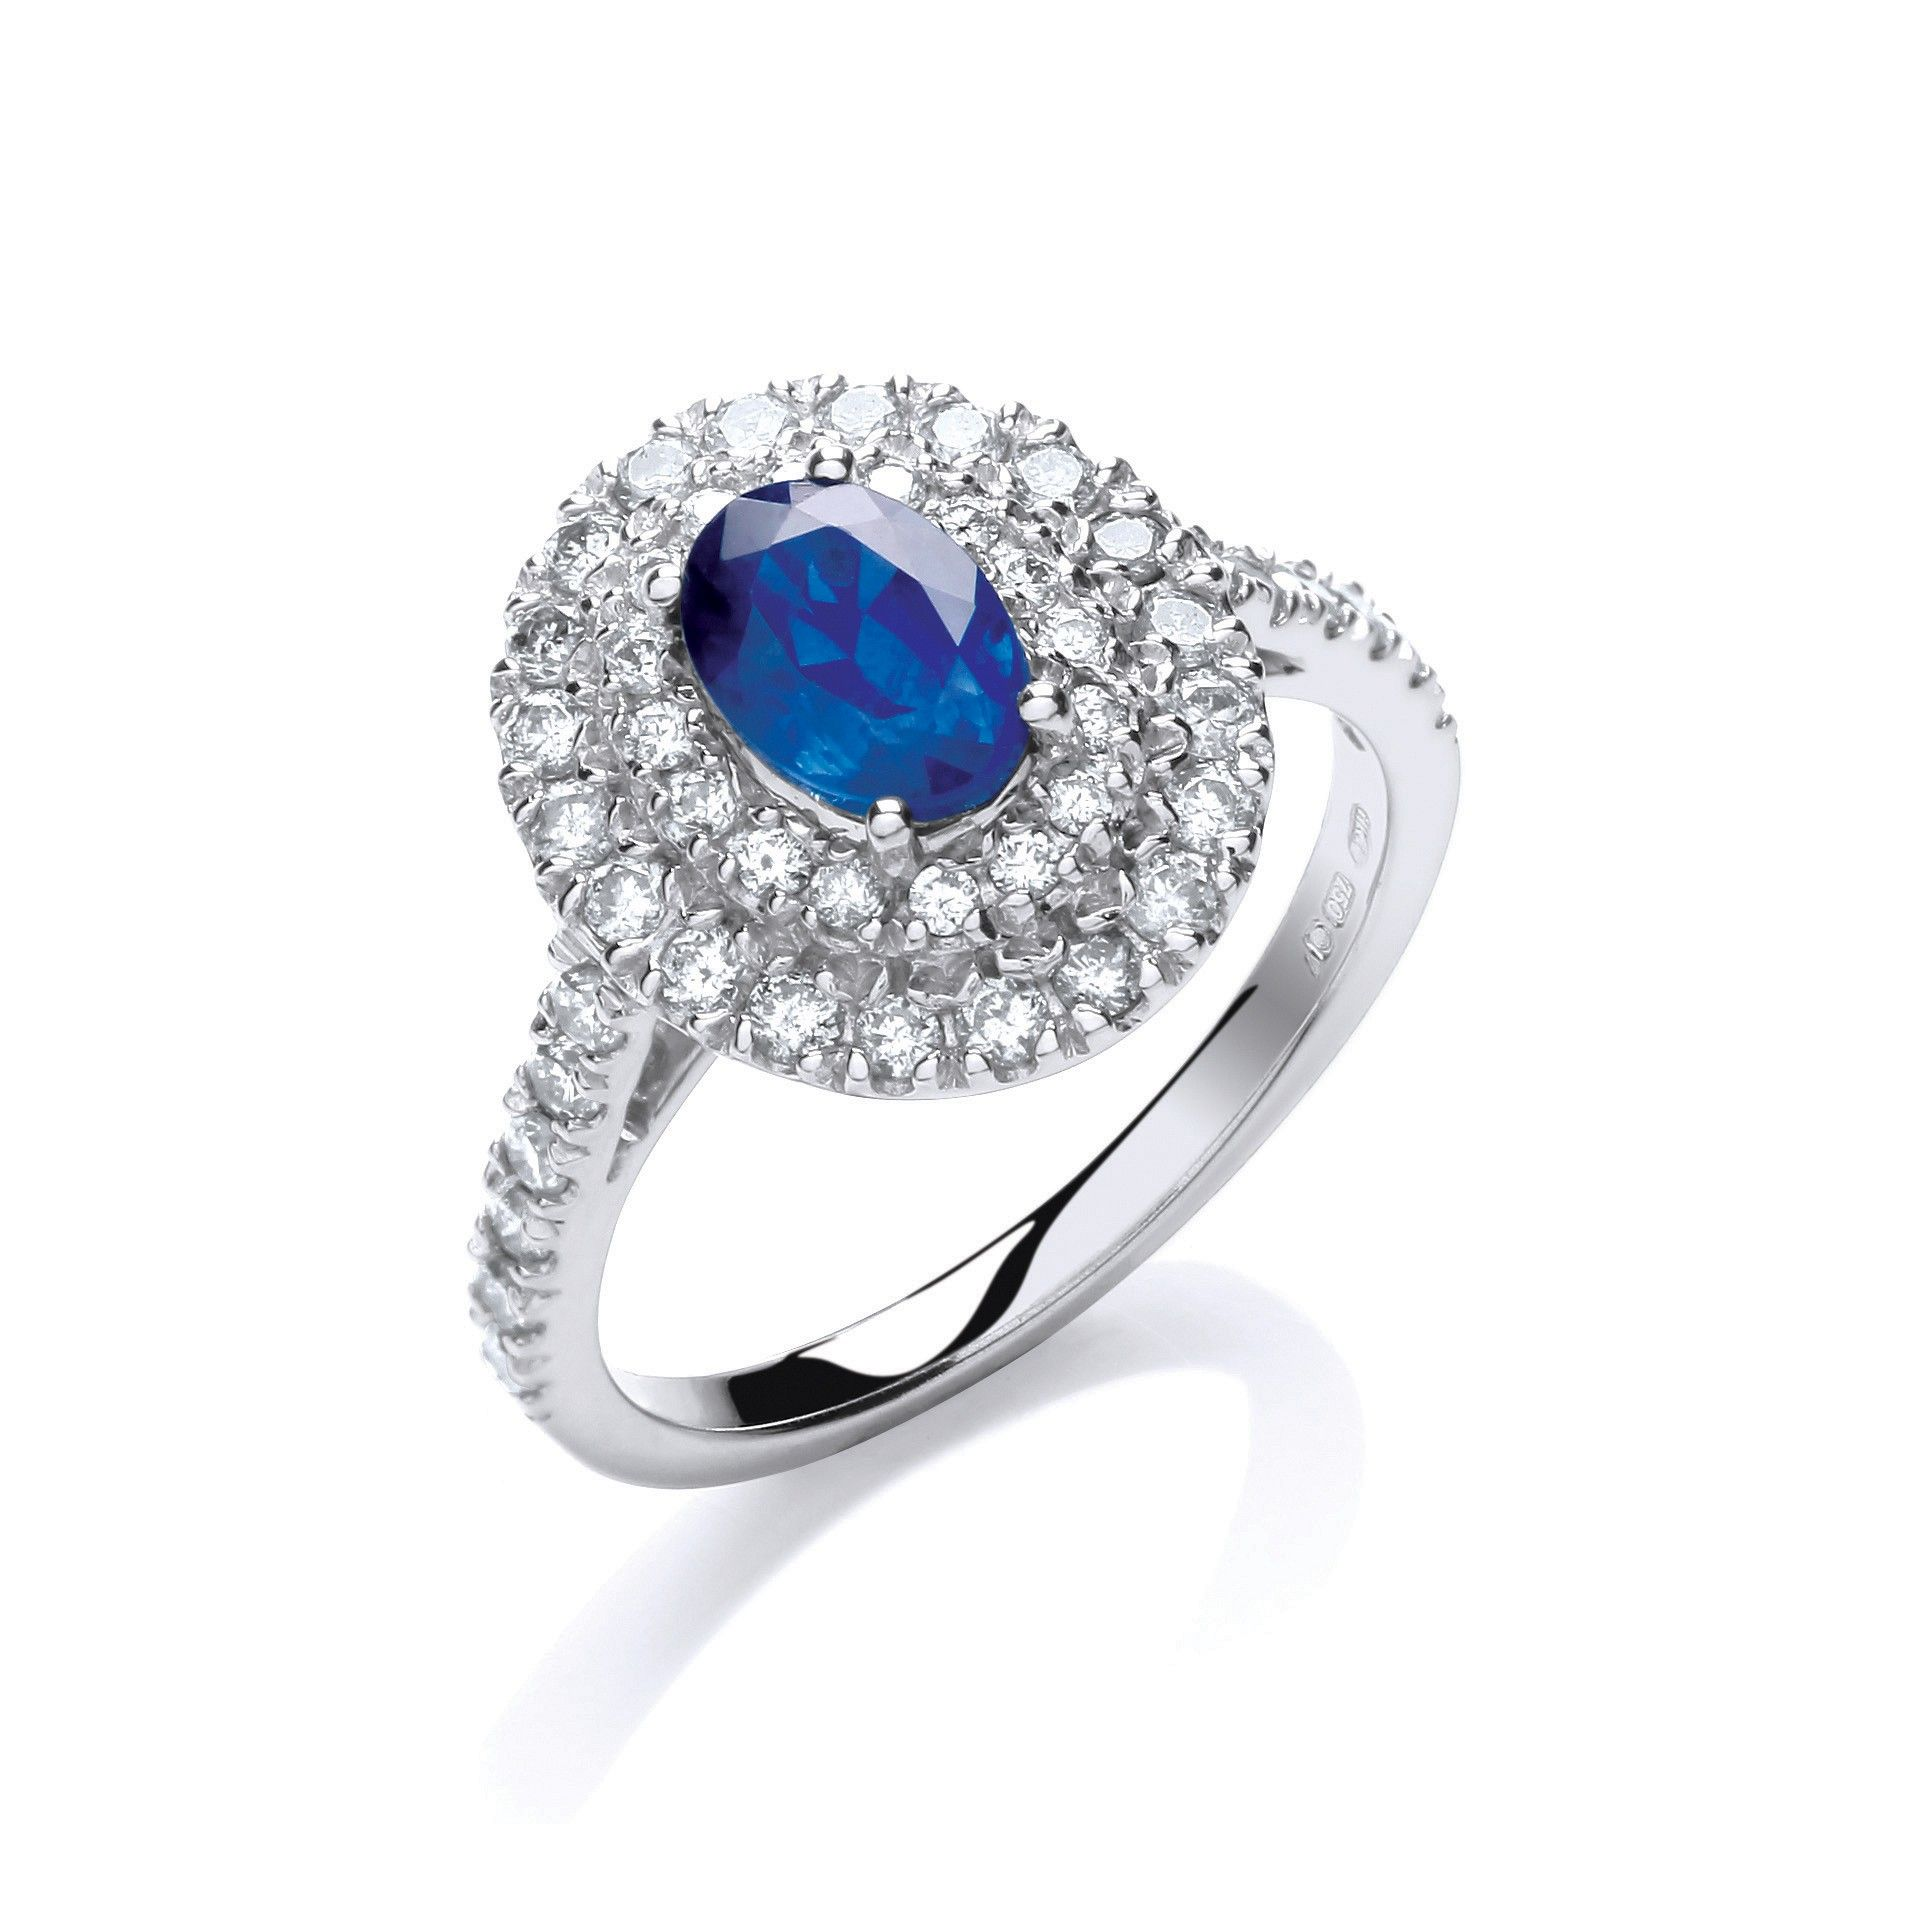 18ct White Gold Oval 1.0ct Sapphire Ring  Surrounded it by 0.60ct of Diamonds Sapphire Gold